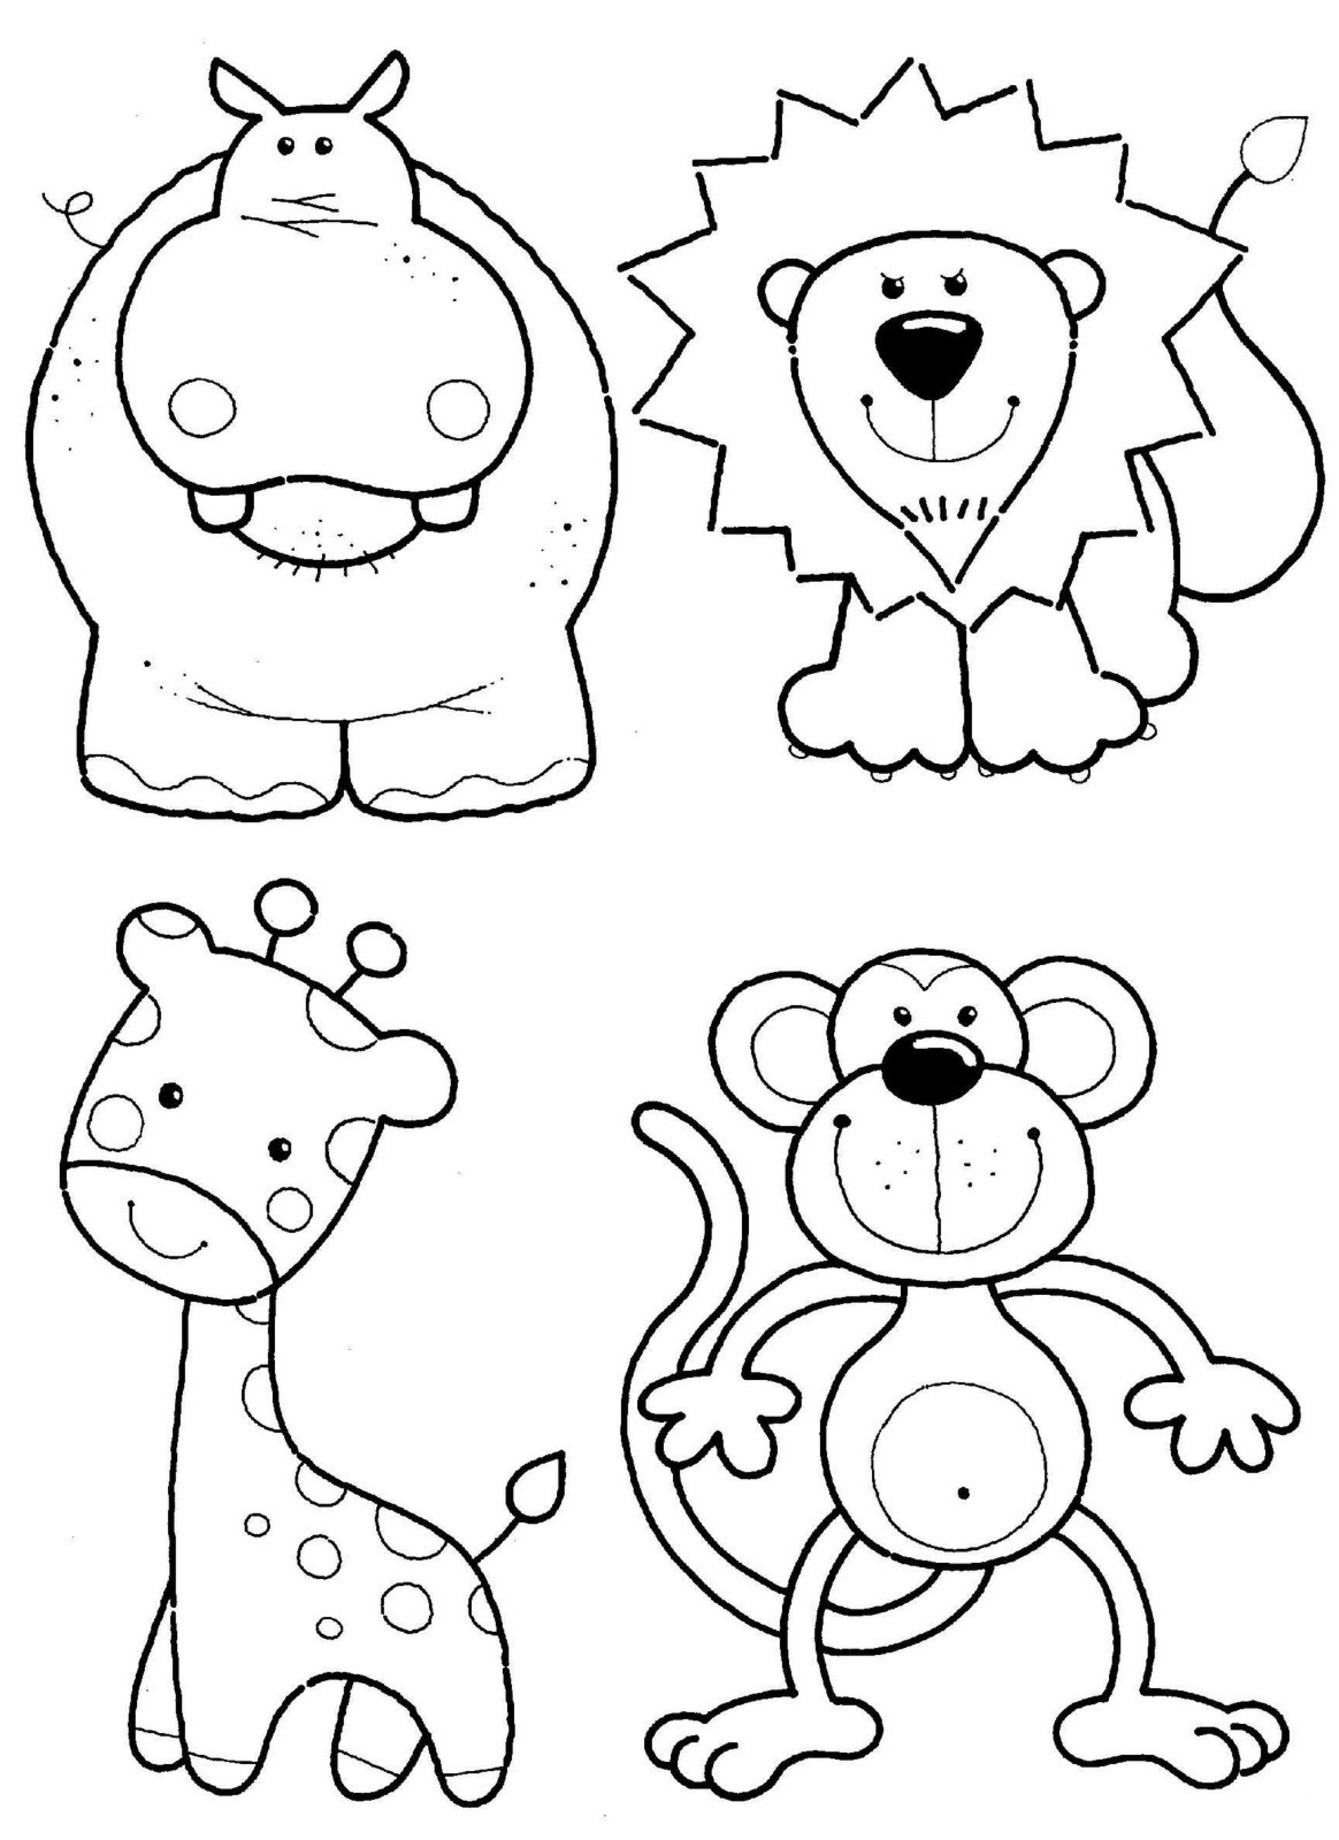 coloring animal for kids zoo animals coloring pages best coloring pages for kids animal coloring kids for